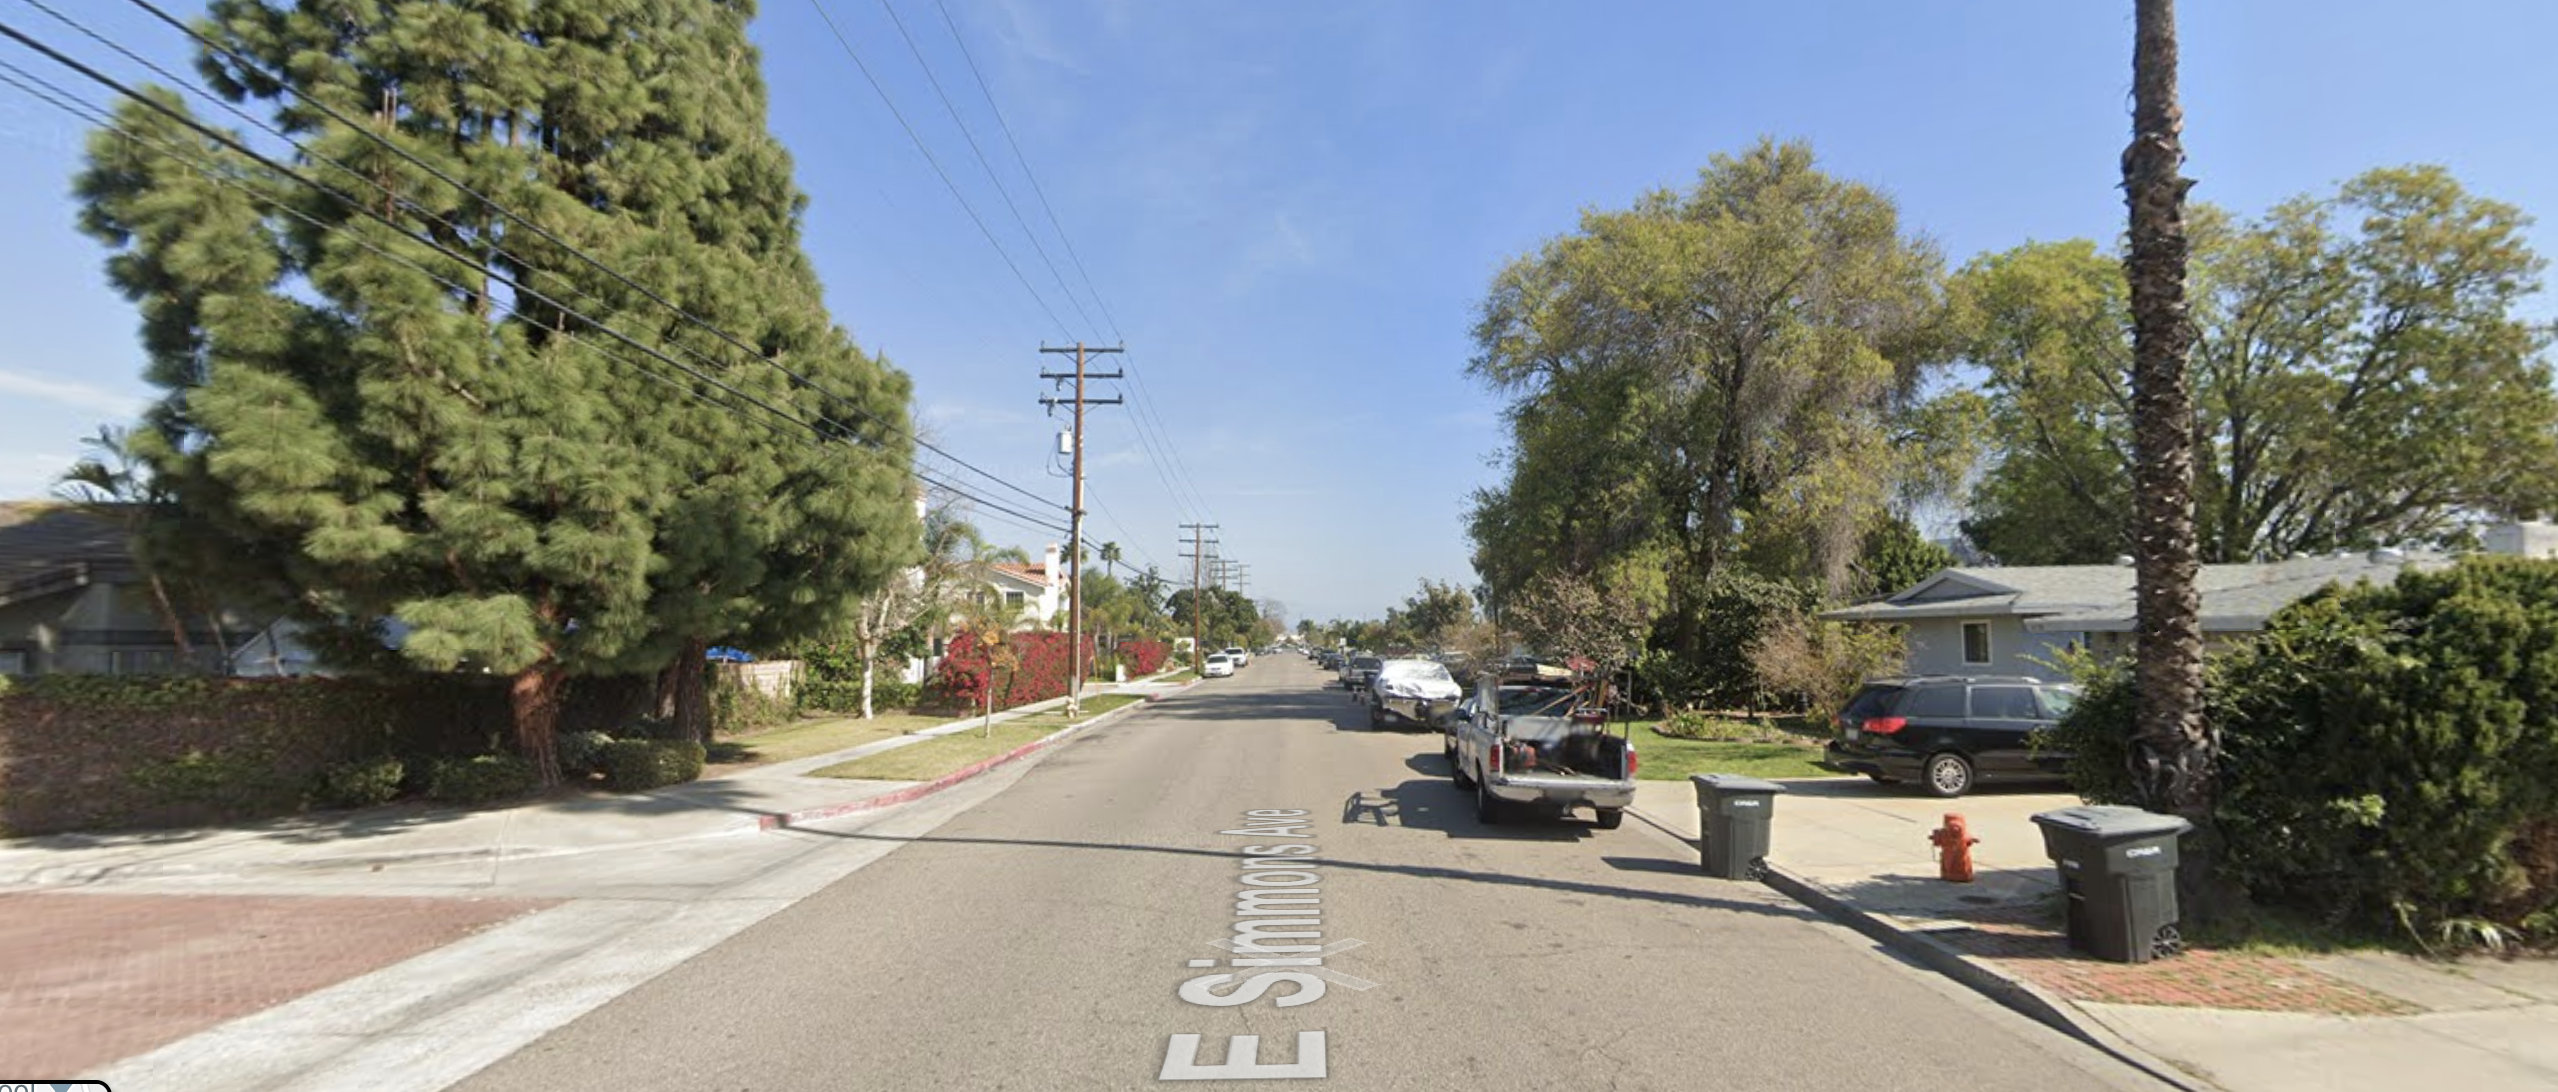 The 13000 block of Simmons Avenue in Garden Grove is seen in a Google Maps street view photo.